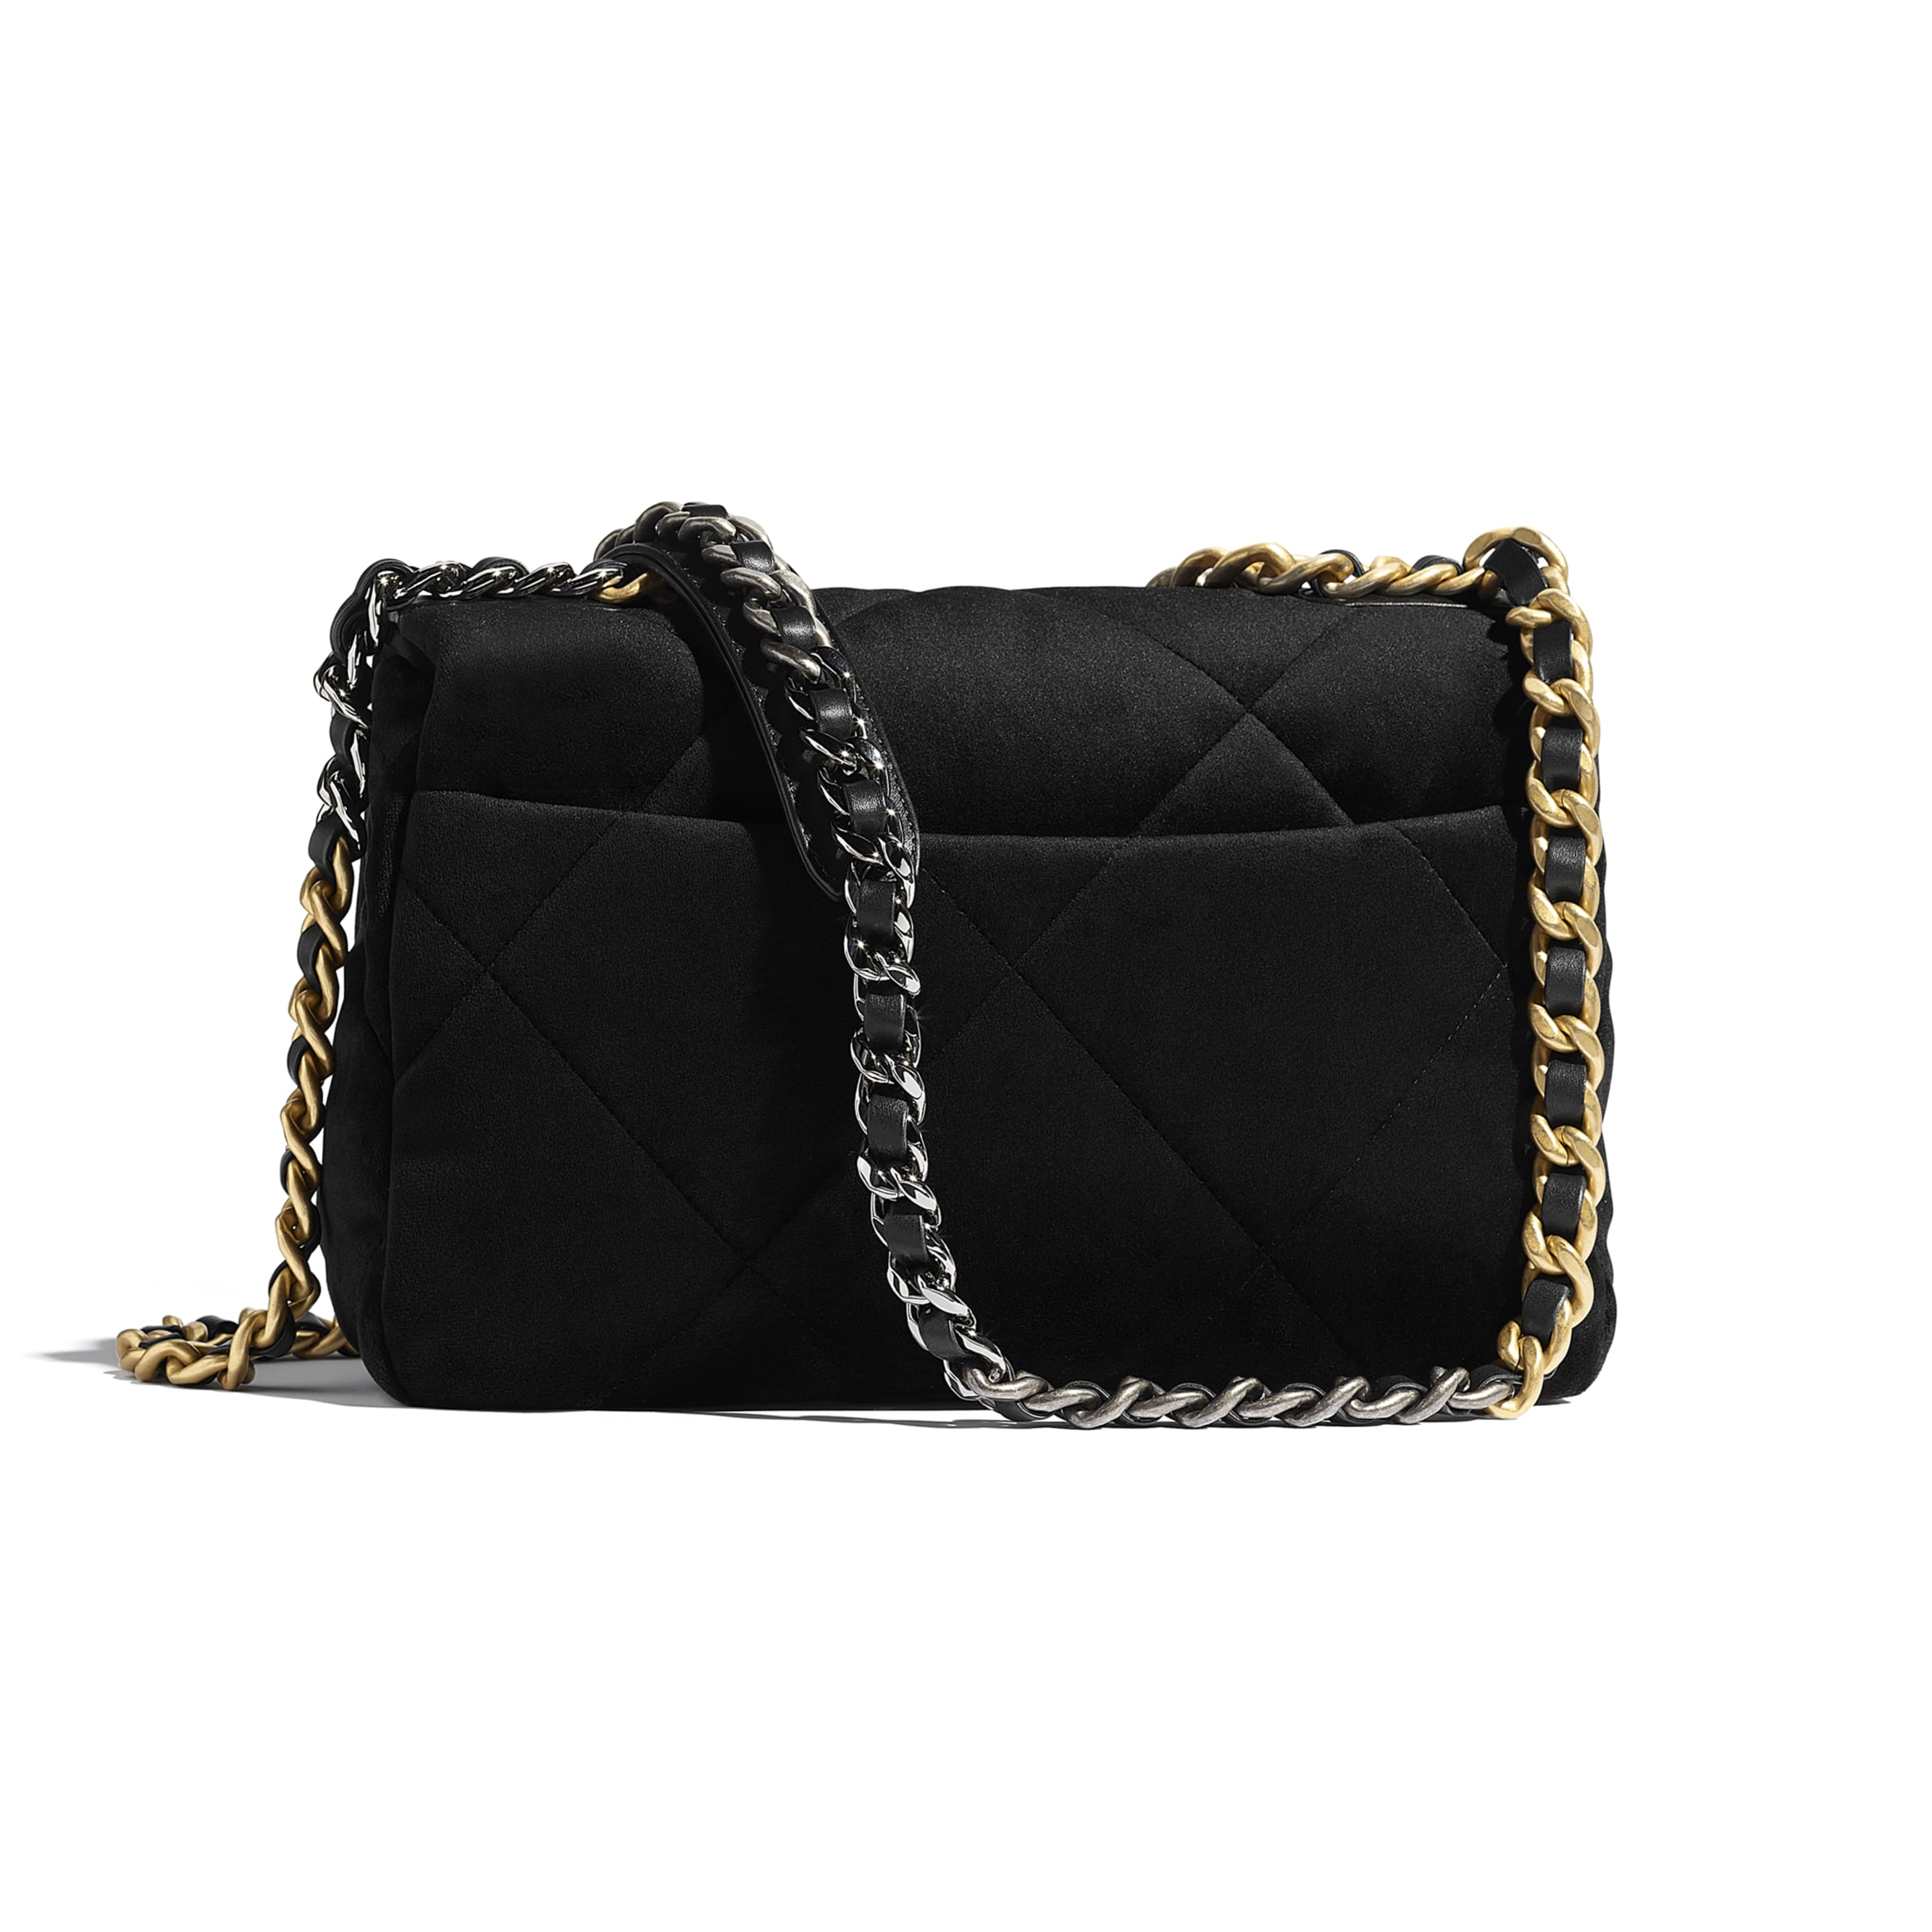 CHANEL 19 Flap Bag - Black - Velvet, Black & Gold-Tone Metal - CHANEL - Alternative view - see standard sized version